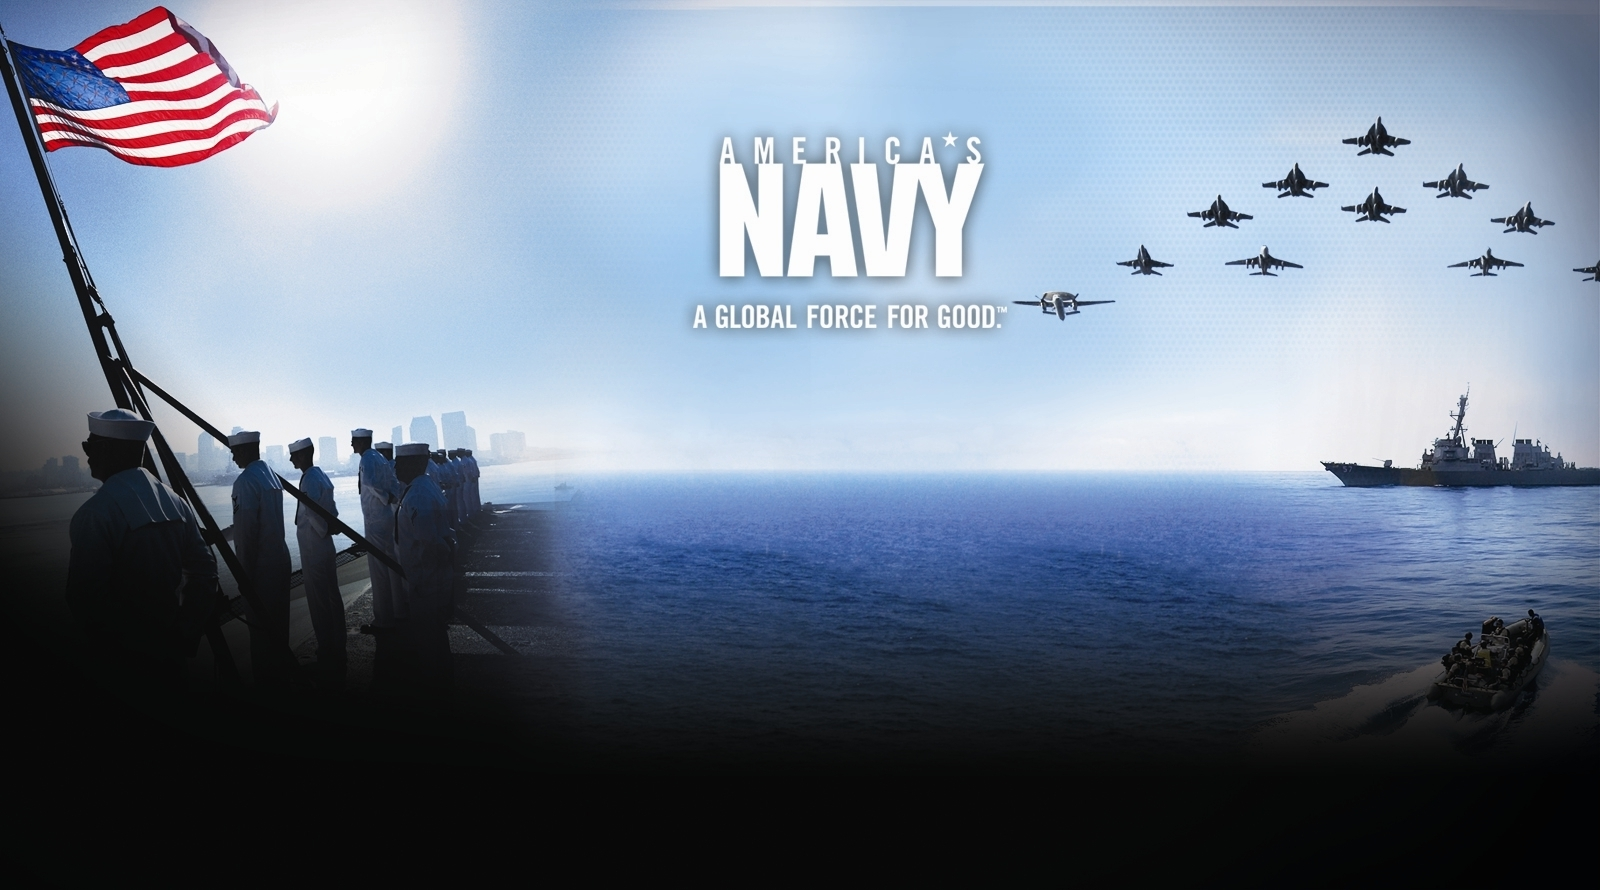 united states navy wallpaper